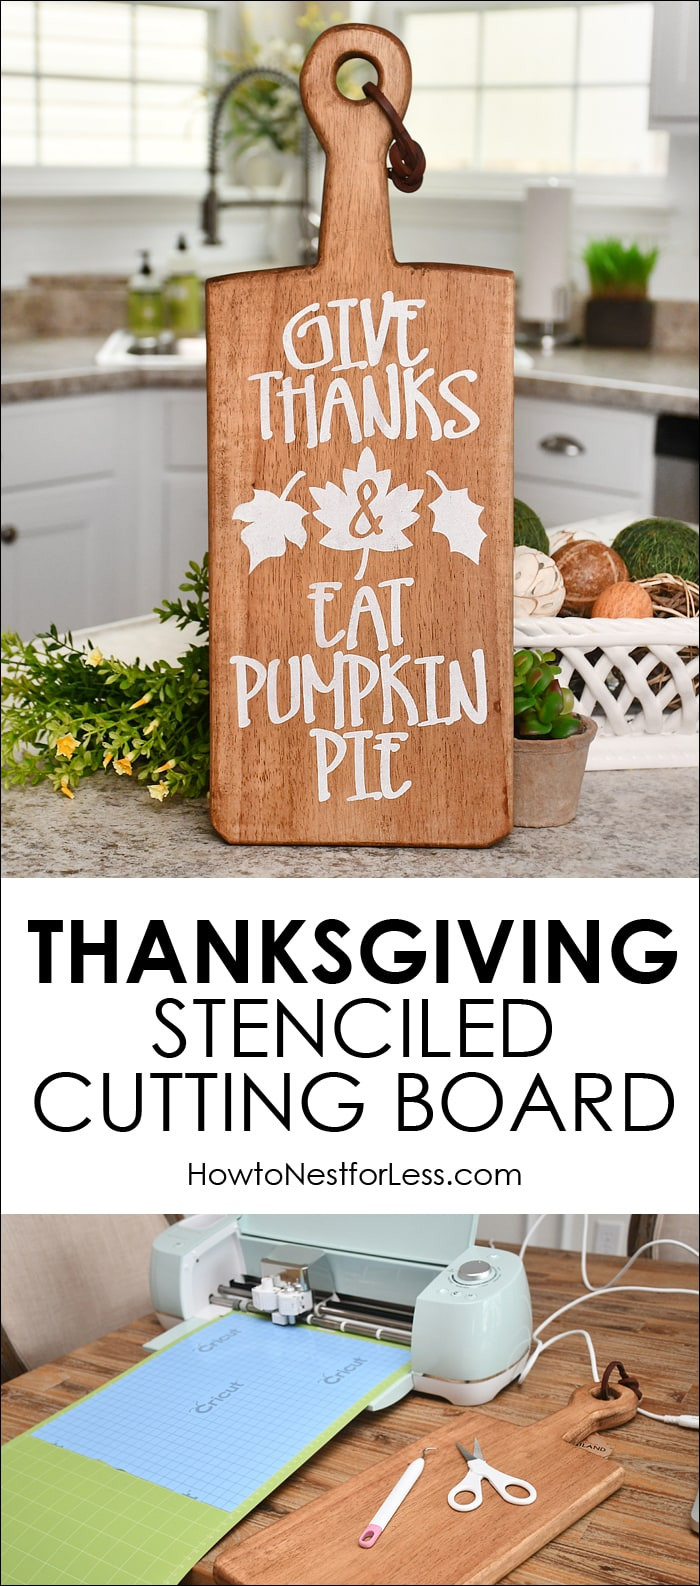 Thanksgiving Stenciled Cutting Board Cricut Holiday Project